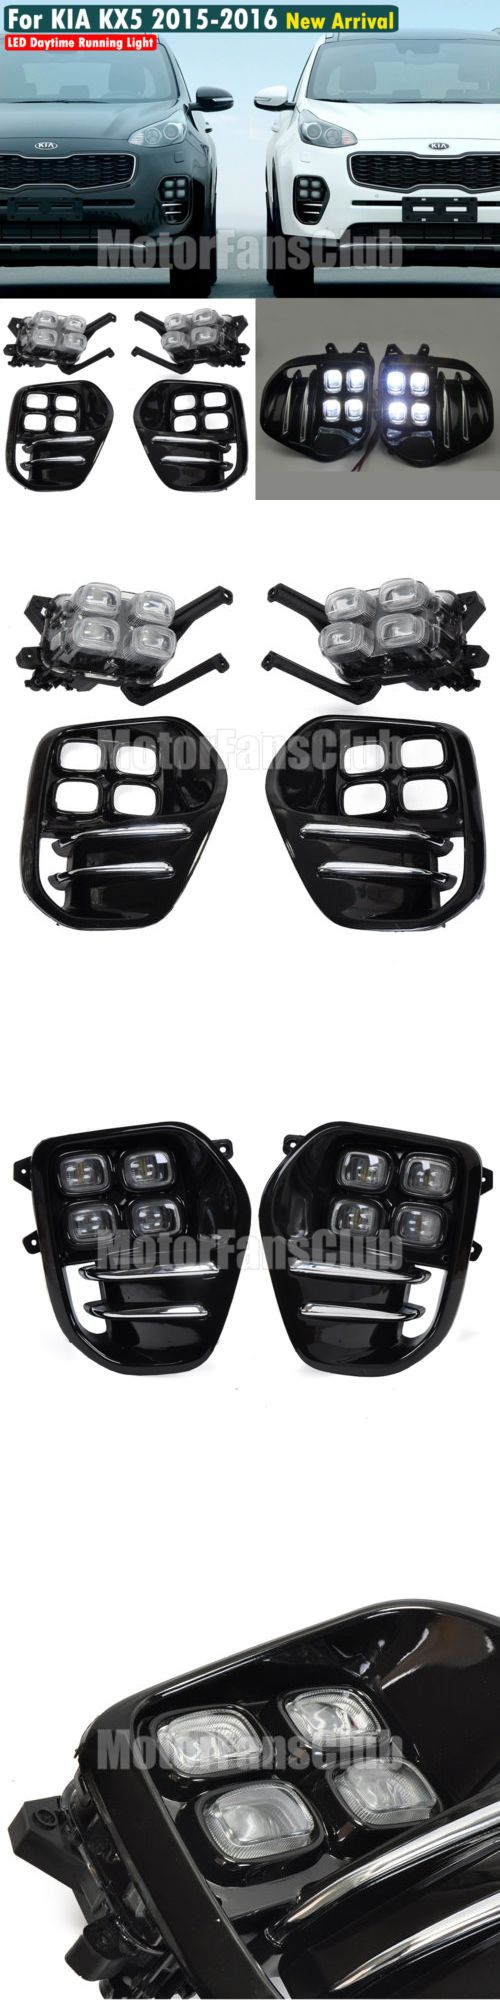 Motors Parts And Accessories: Drl For Kia Sportage Iv Kx5 2016 2017 Led Daytime Running Light Driving Fog Lamp -> BUY IT NOW ONLY: $165 on eBay!